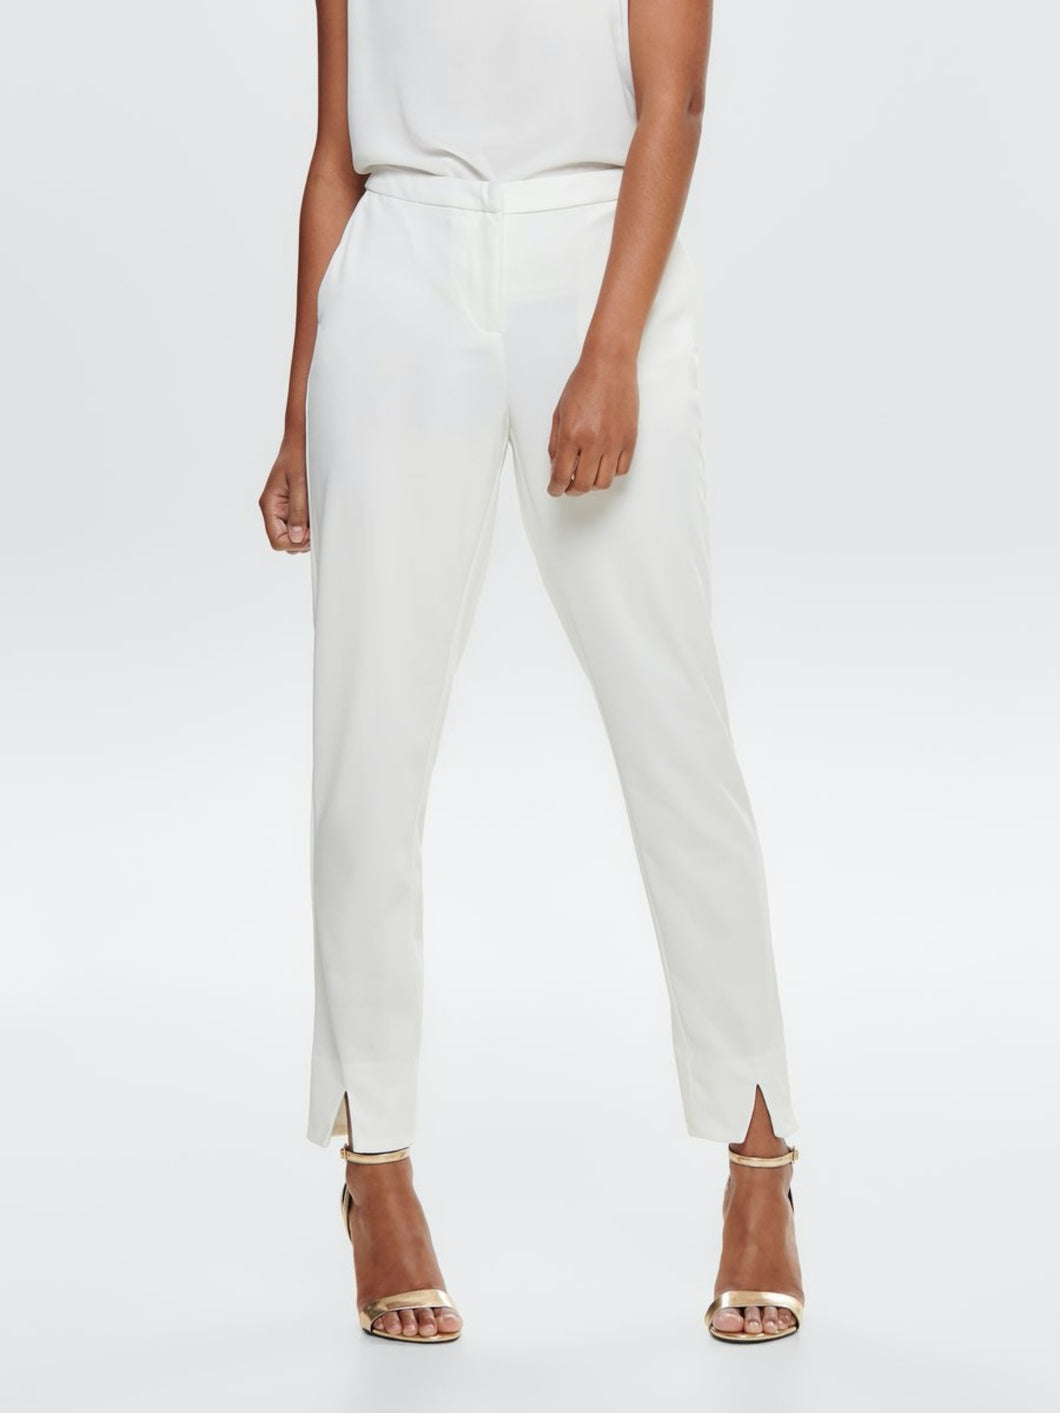 Carolina Cigarette Pants - White / 34 - L8ER